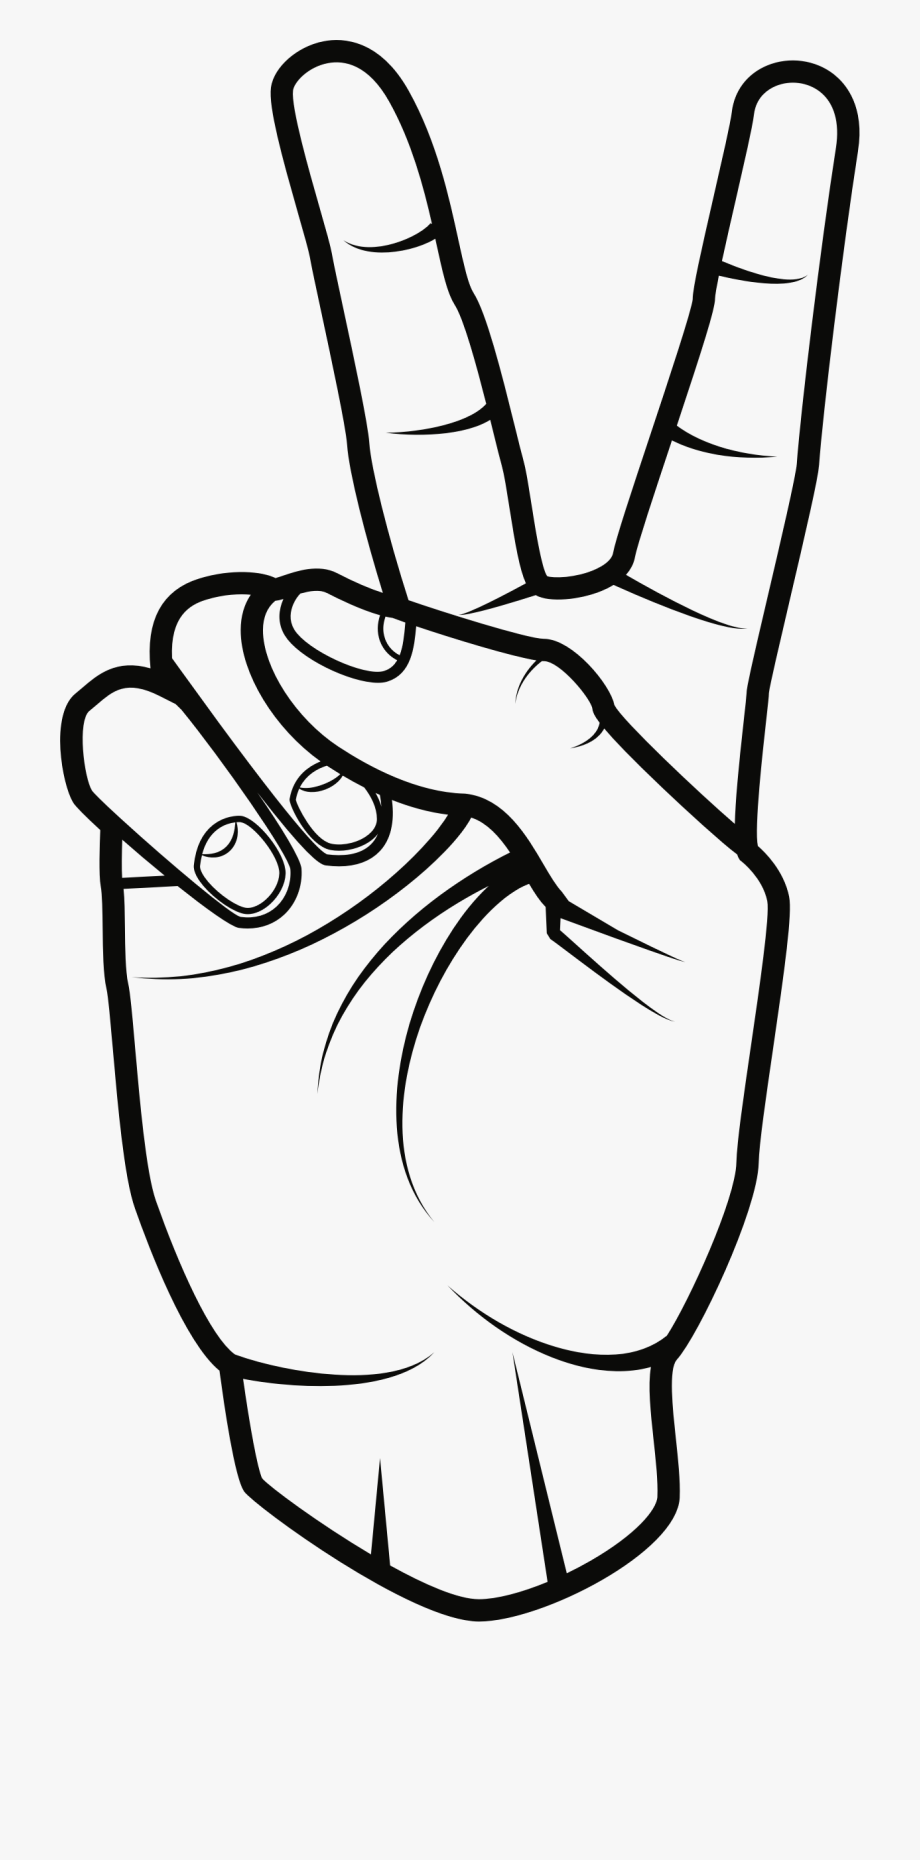 Peace Sign Clipart Black And White.